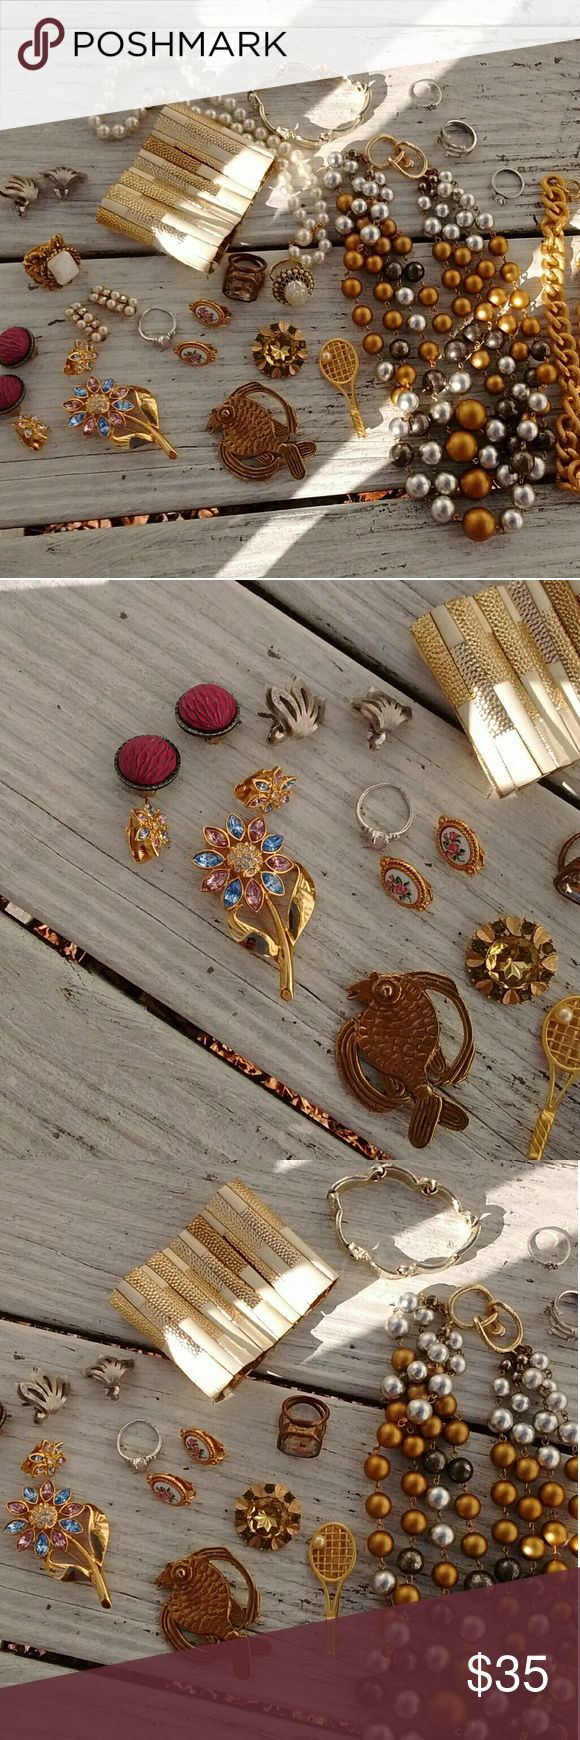 Huge Costume Jewelry Bundle Lot 21 pieces *Total of 21 jewelry pieces: 7 rings, 5 pairs of clip-on earrings, 4 pin brooches, 2 bracelets, and 3 necklaces  *Gold colored and silver colored costume jewelry bundle  *Rings, bracelets, necklace, clip-on earrings and brooch lot  *Unsigned, Kramer, Avon, and Hong Kong  *pre-loved wear, various wear, some may need cleaning Jewelry